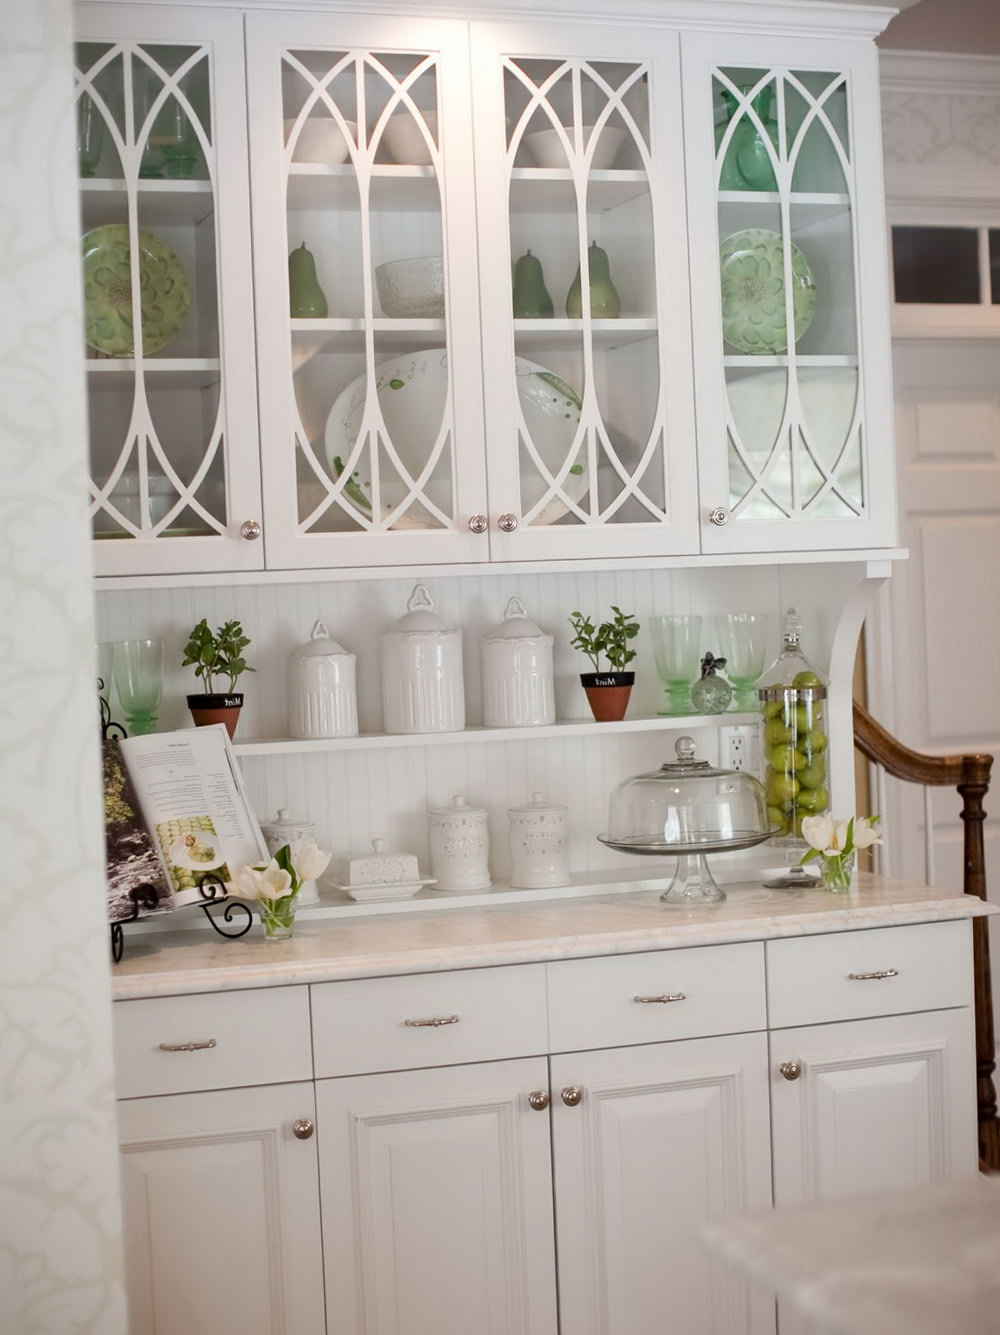 How To Decorate Kitchen Cabinets With Glass Doors